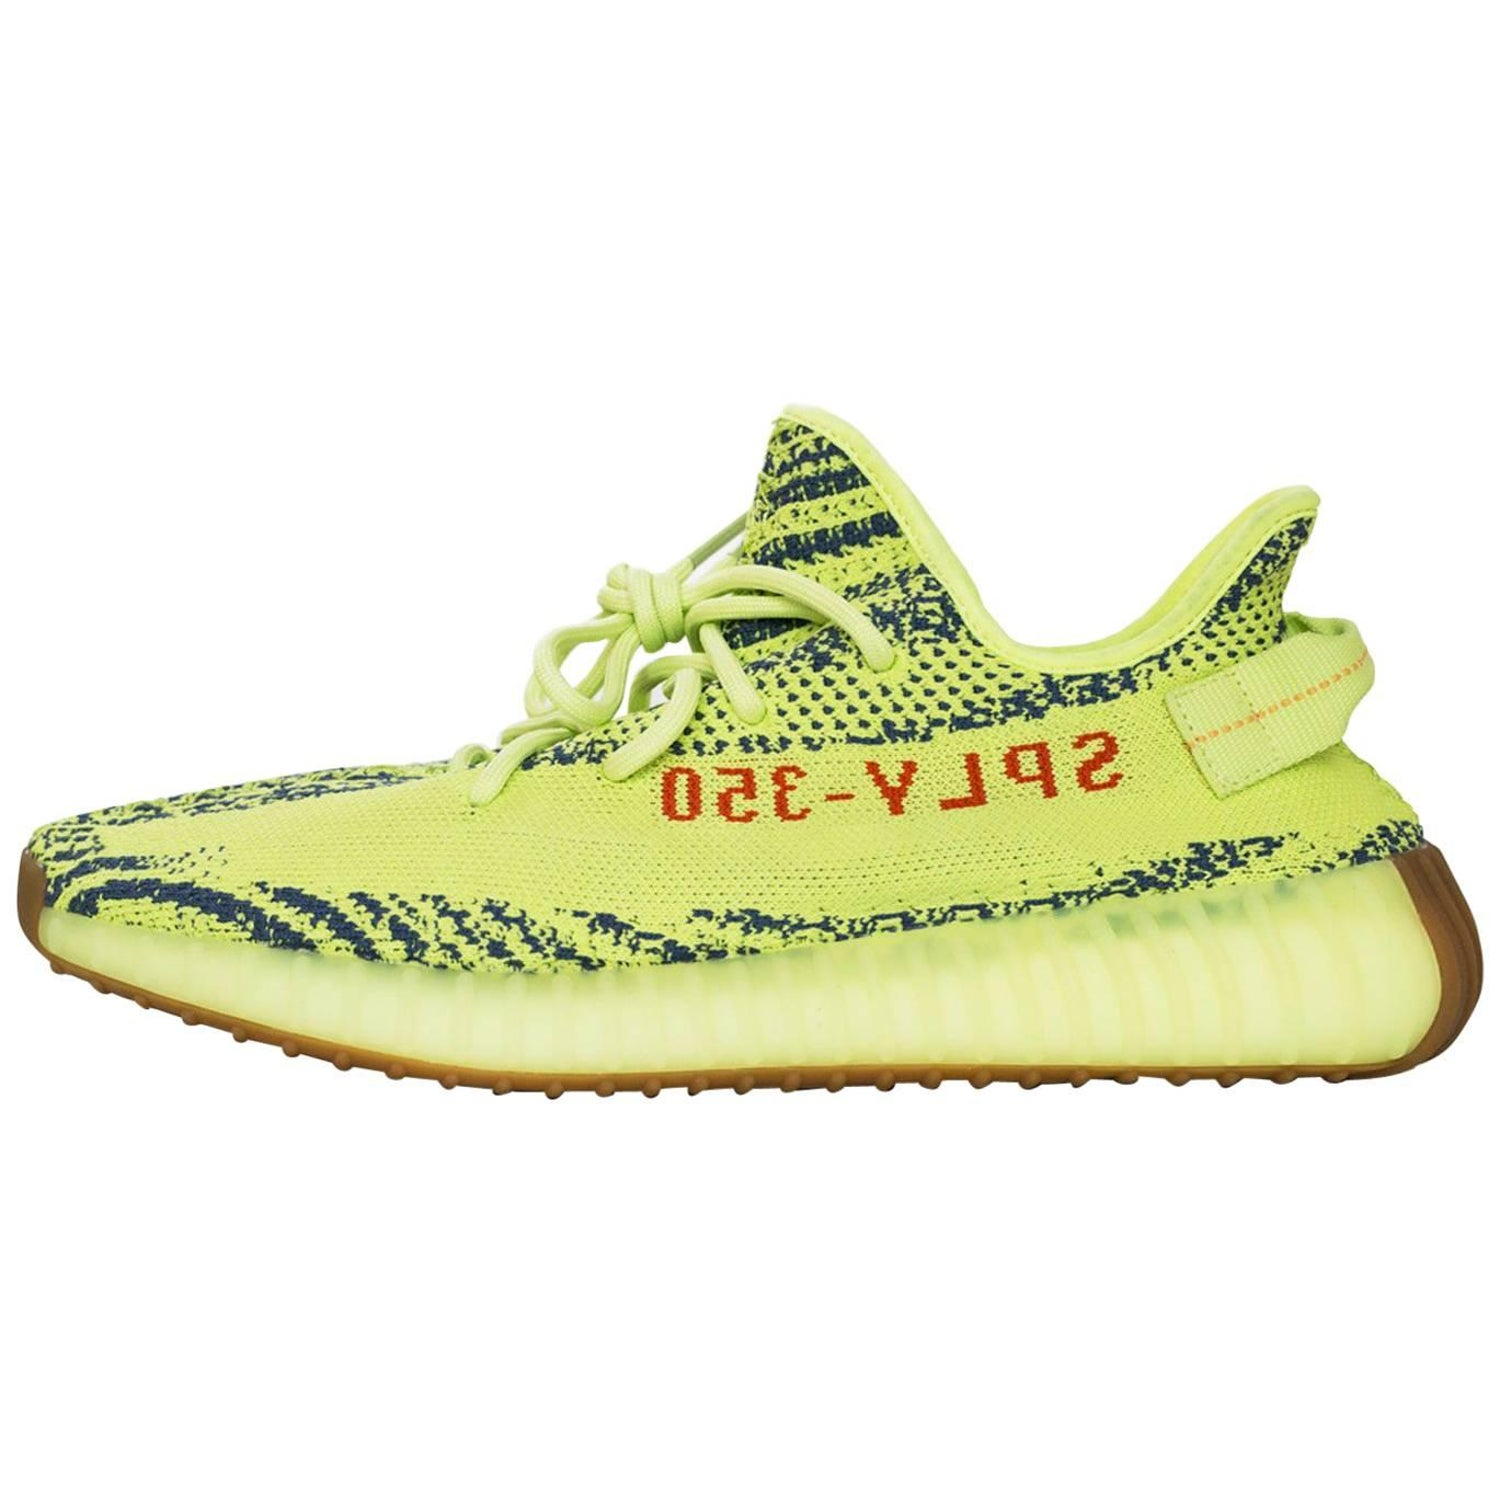 c603a785b86c2 Adidas x Kanye West Yeezy Boost 350 V2 Semi Frozen Yellow 2.0 Sneakers Sz  10 NIB For Sale at 1stdibs